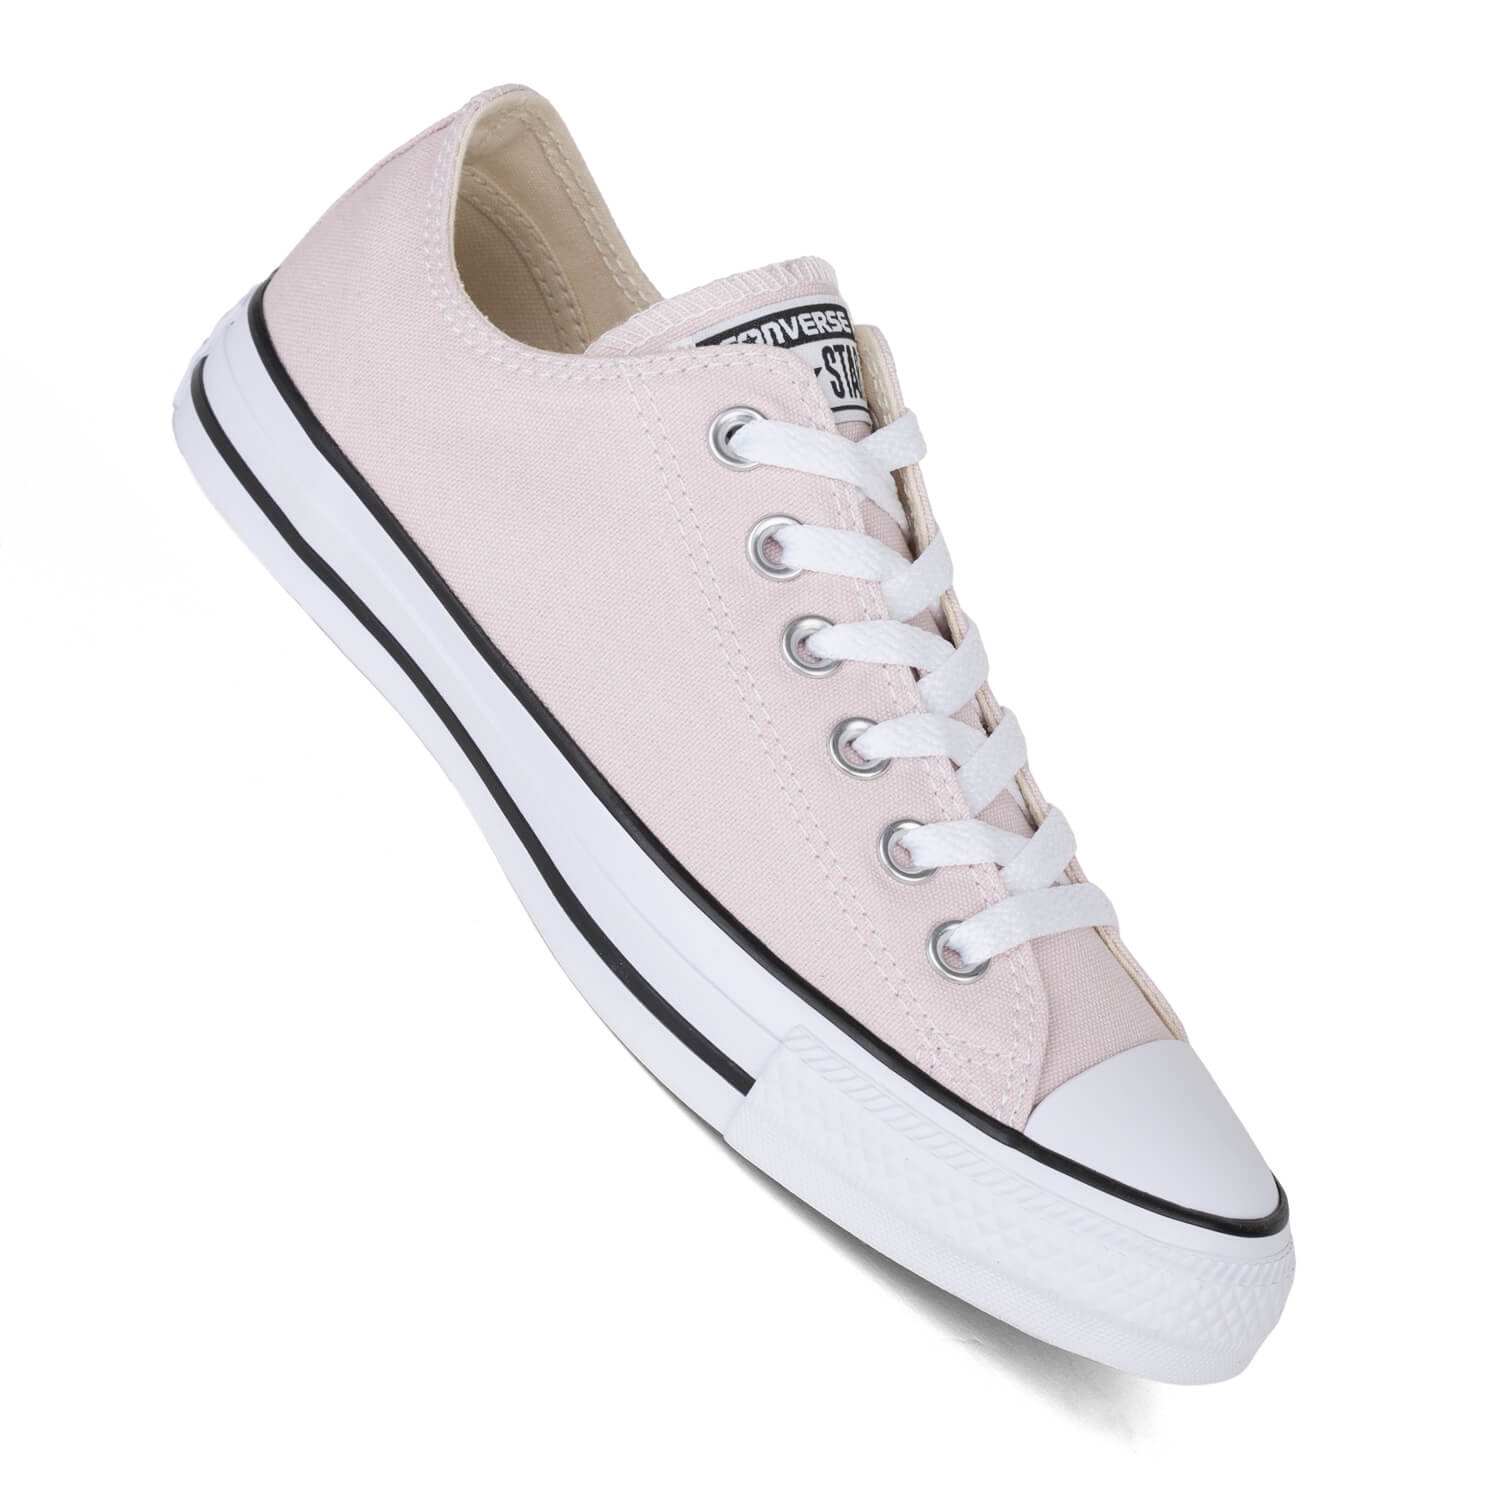 Converse Chucks Lo CTAS OX barely rose Damen Sneaker in ...